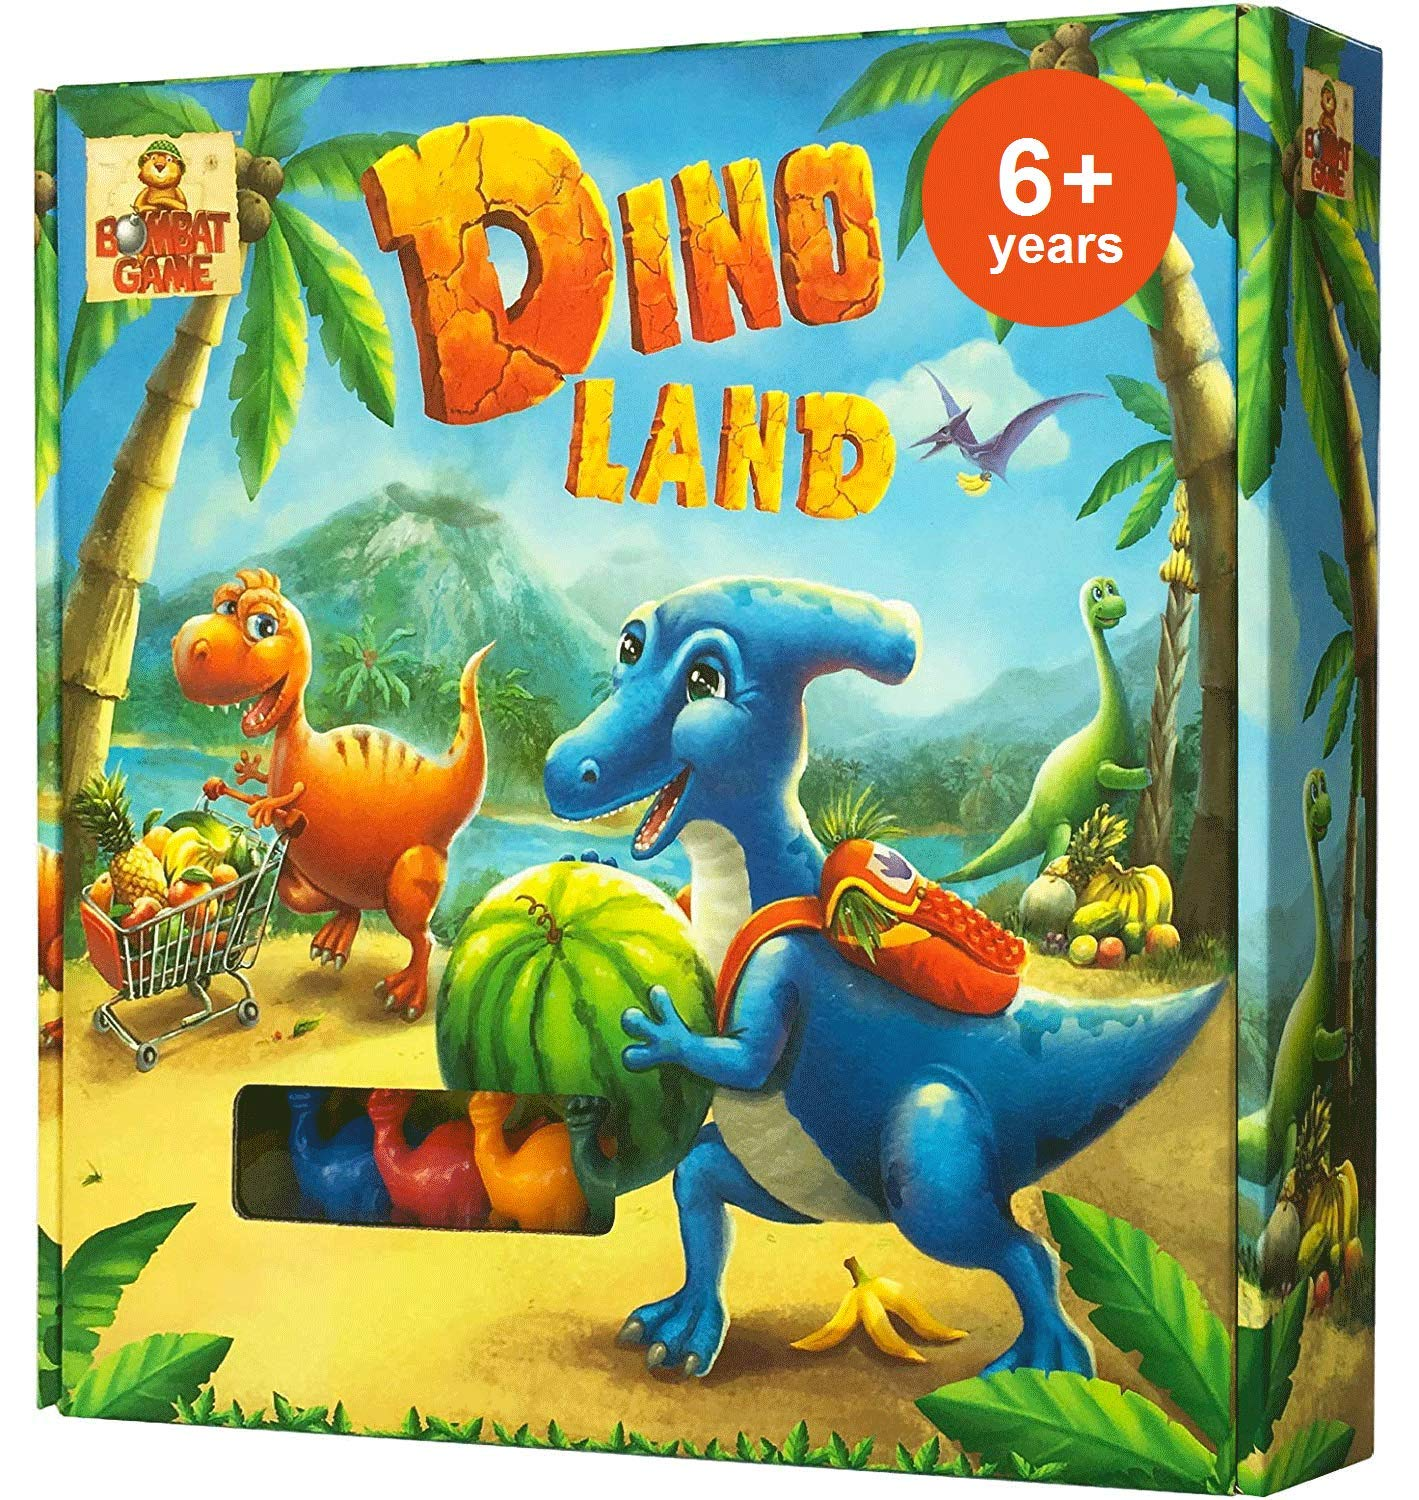 Dino Land - Action and Adventure Dinosaur Games - Best Board Games for Kids  6 and up - Kids Board Games for Families